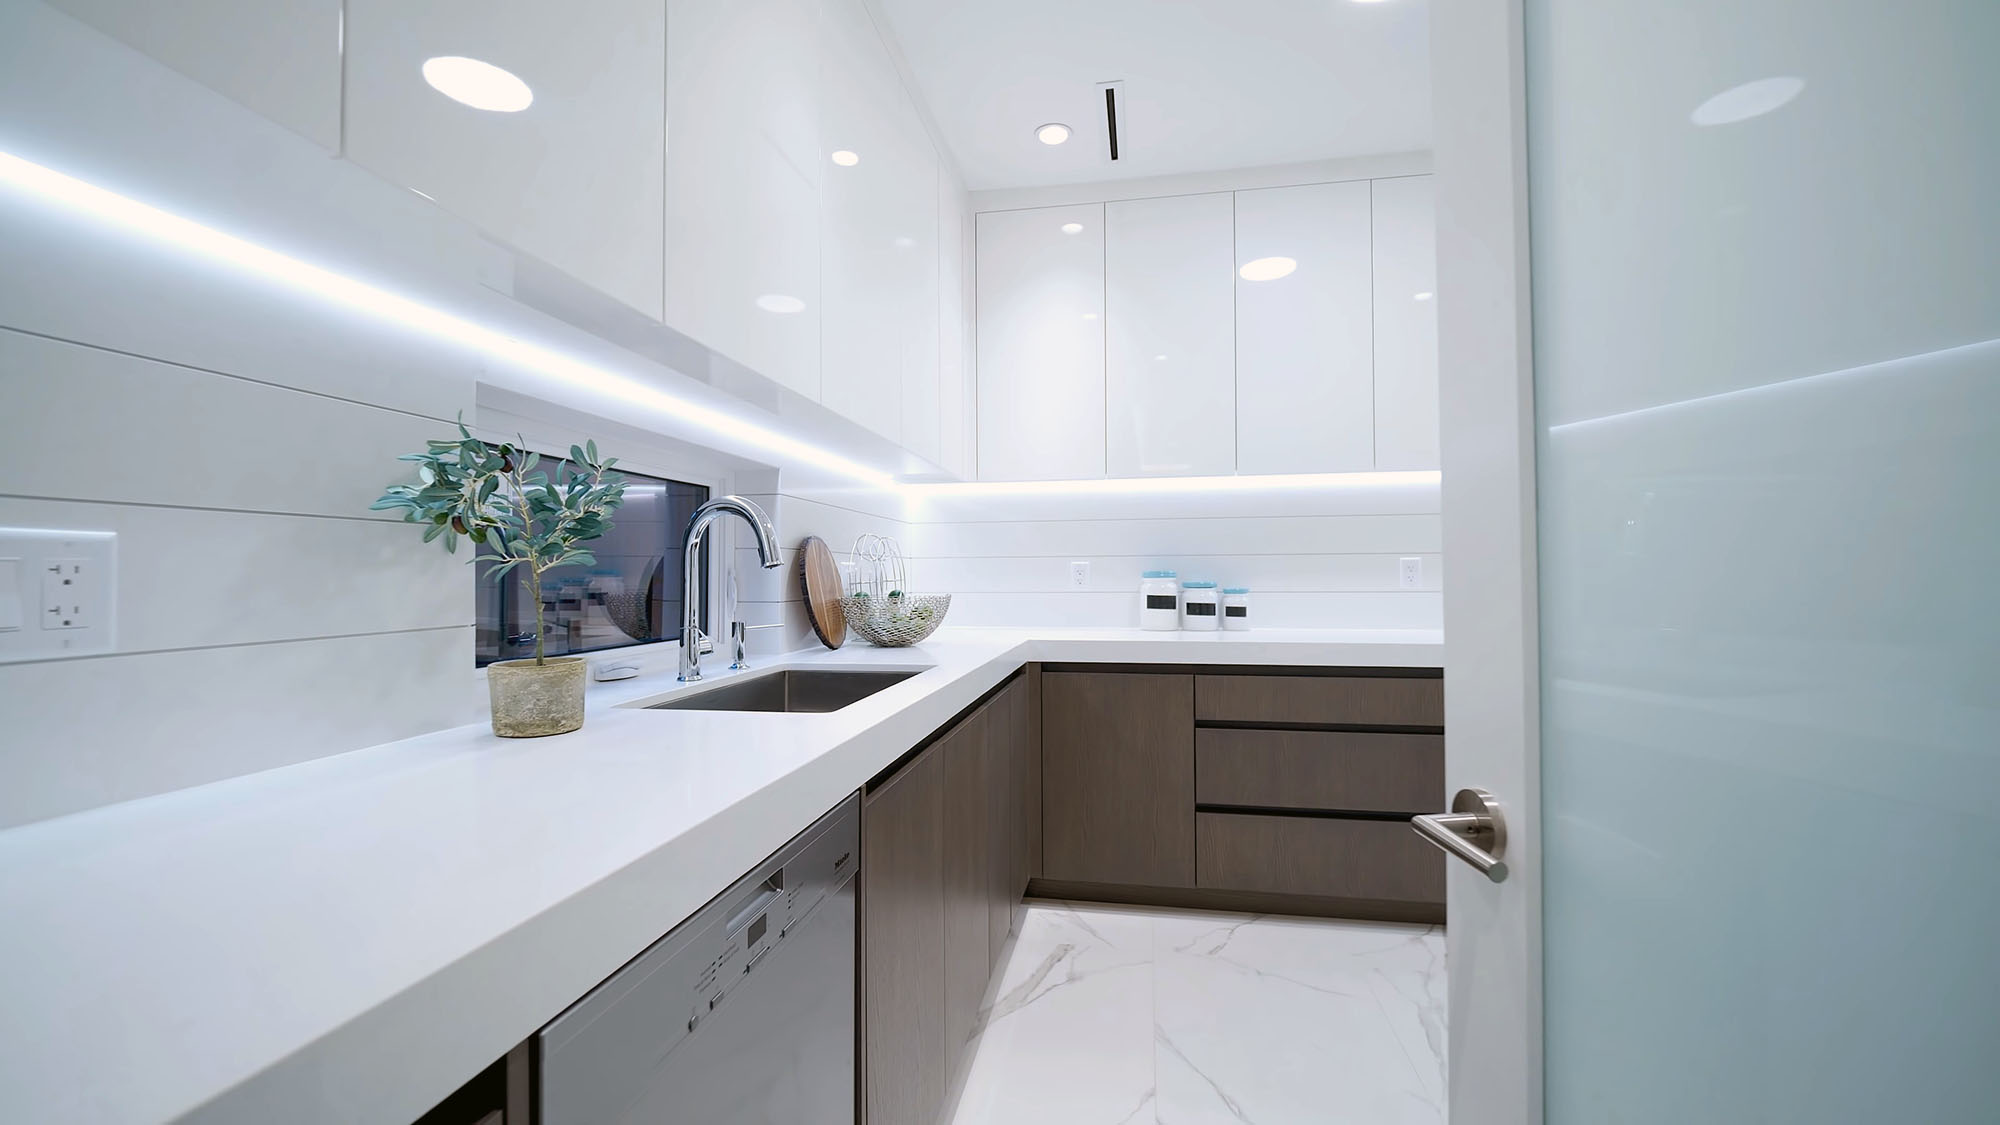 Ultra modern prep kitchen with white flat faced upper cabinetry and grayish wood base. White quartz countertops with a shiplap style backsplash.